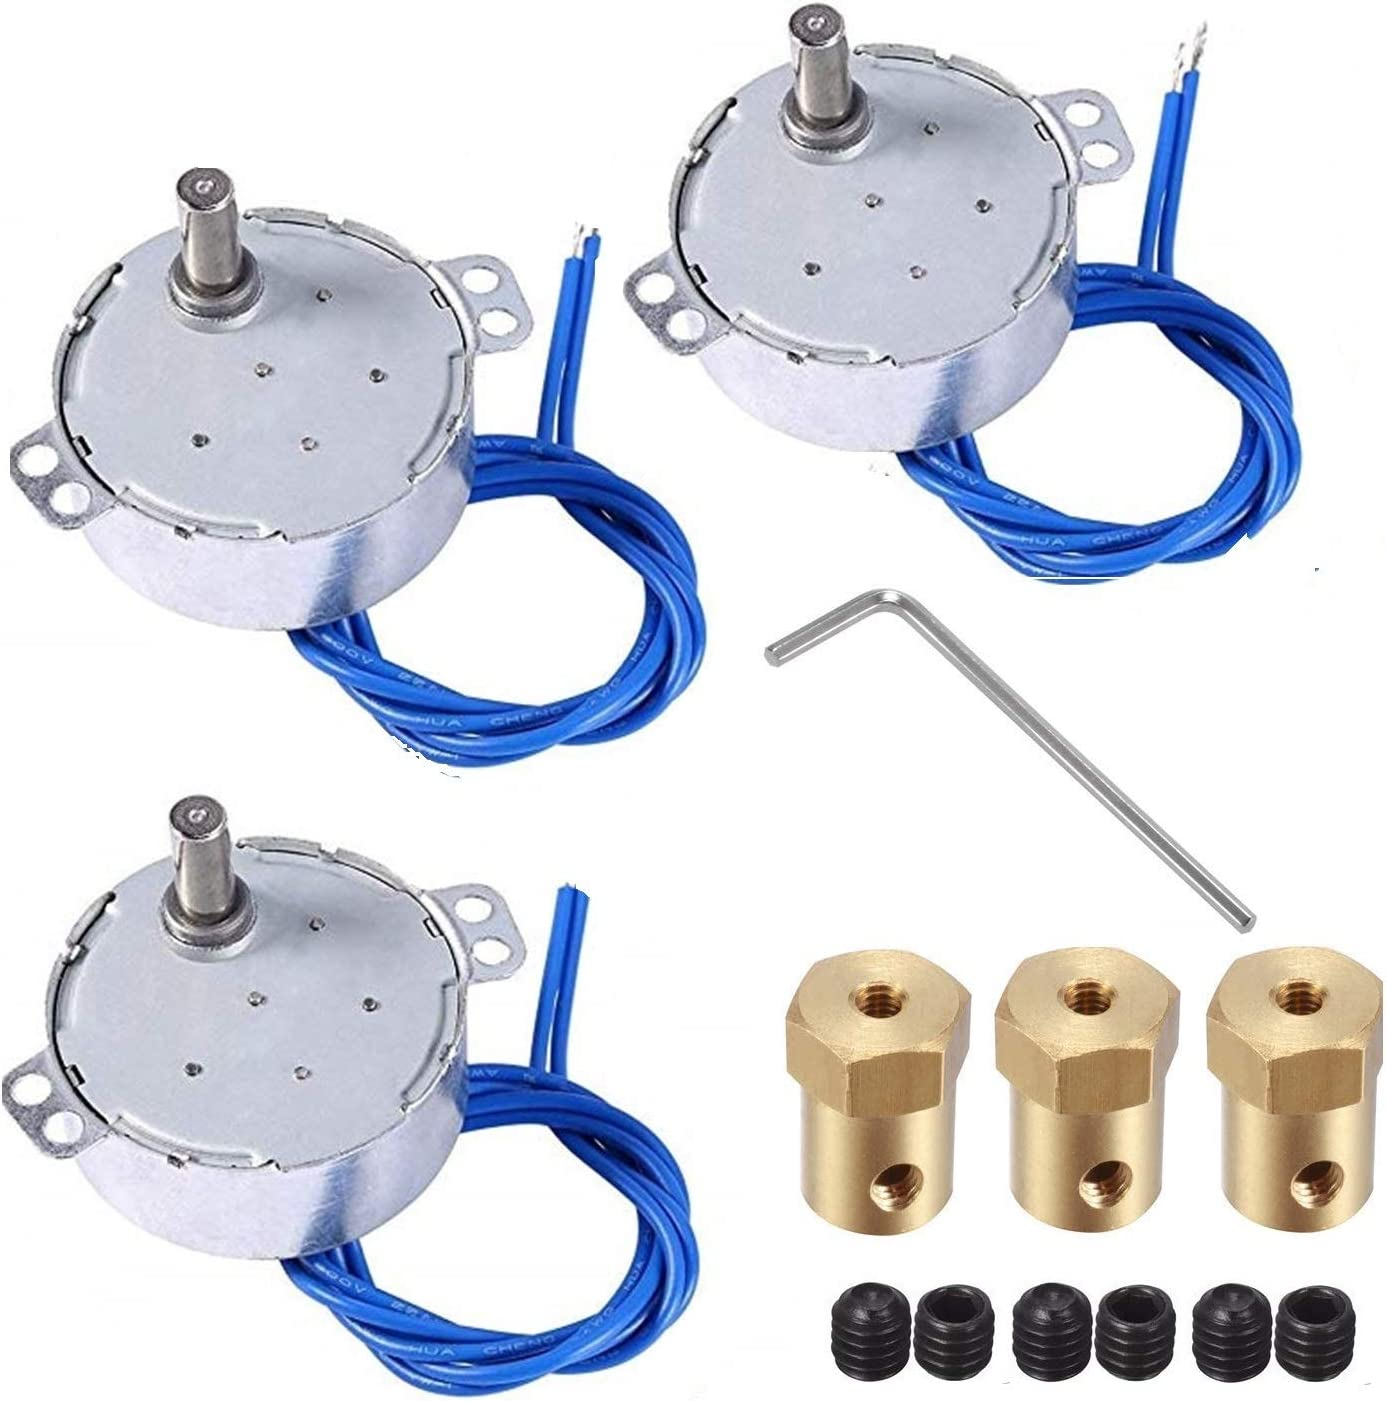 30mm Length Tumbler Turner Spinner 4 set Synchronous Turntable Motor Electric Motor for Cup Turner Cuptisserie Flexible Coupling Connector,50//60Hz AC100~127V 4W CCW//CW Cup Rotator with 7mm